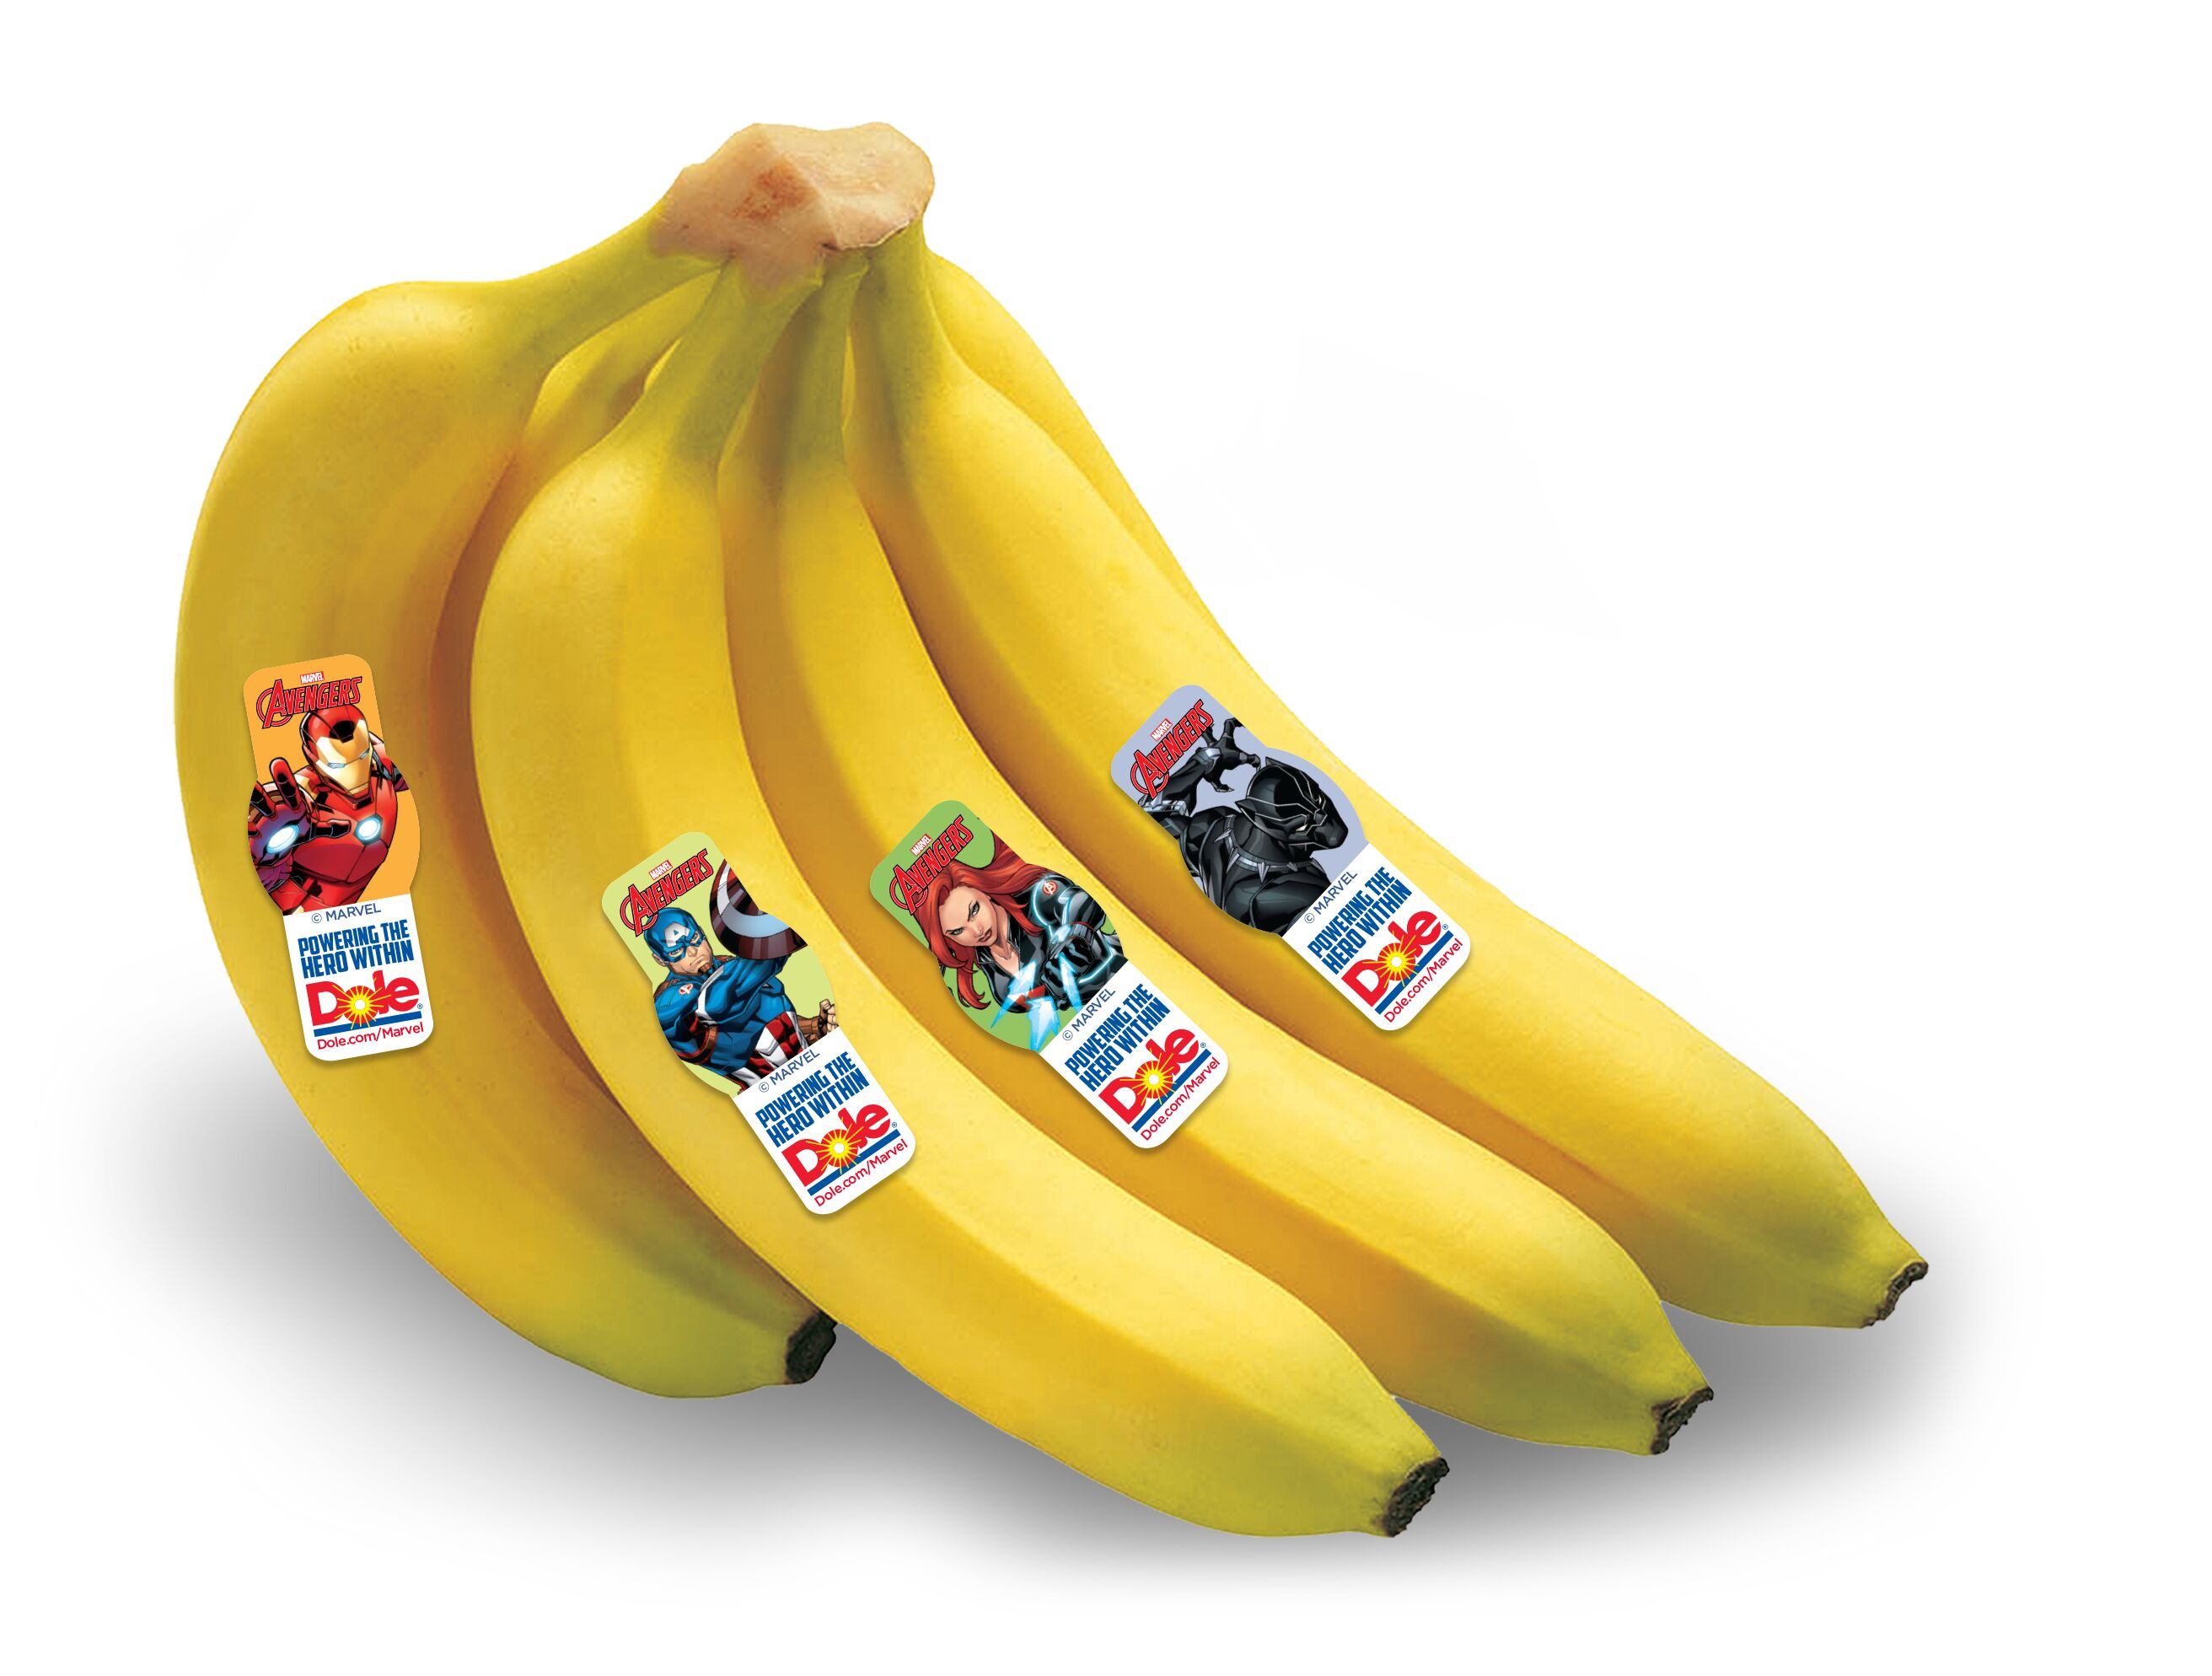 Avengers Marvel Banana stickers